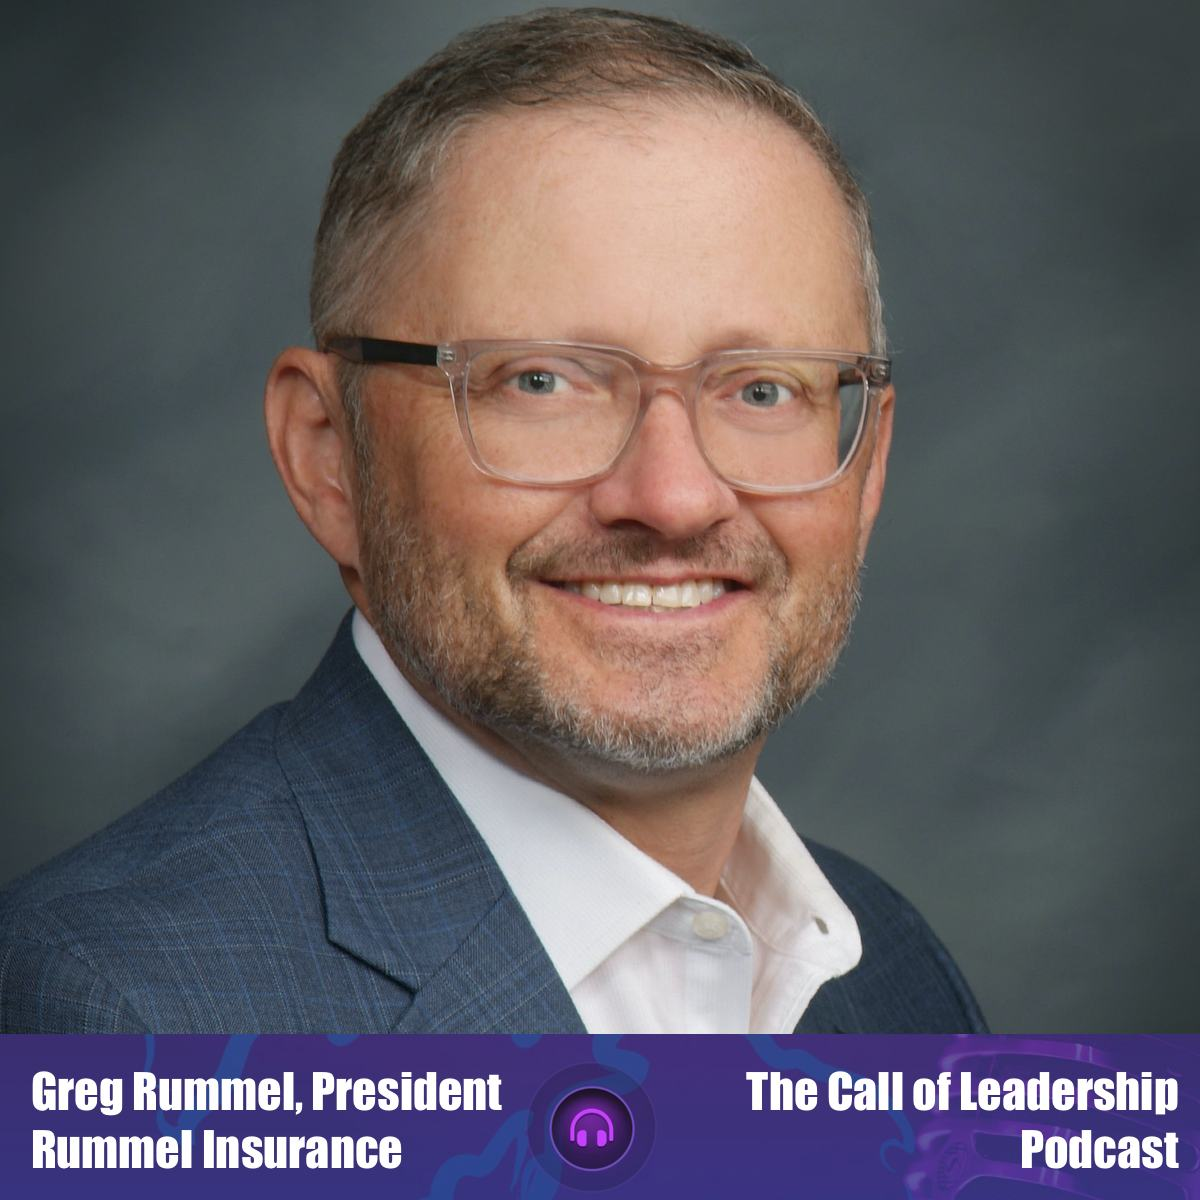 Greg Rummel - Rummel Insurance